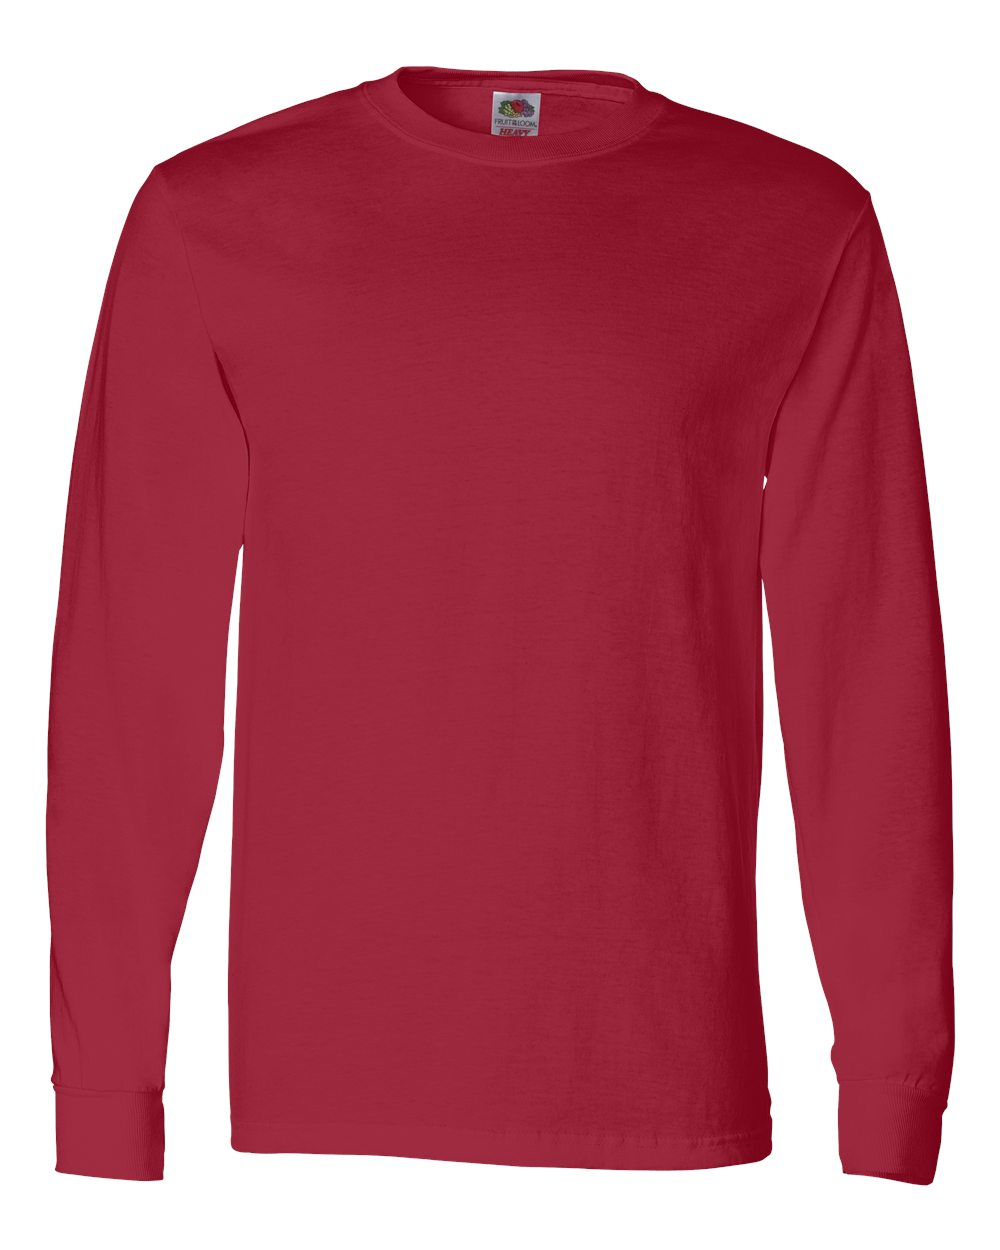 6ee7a375c9a7 Picture of Fruit Of The Loom HD Cotton Long Sleeve T-Shirt